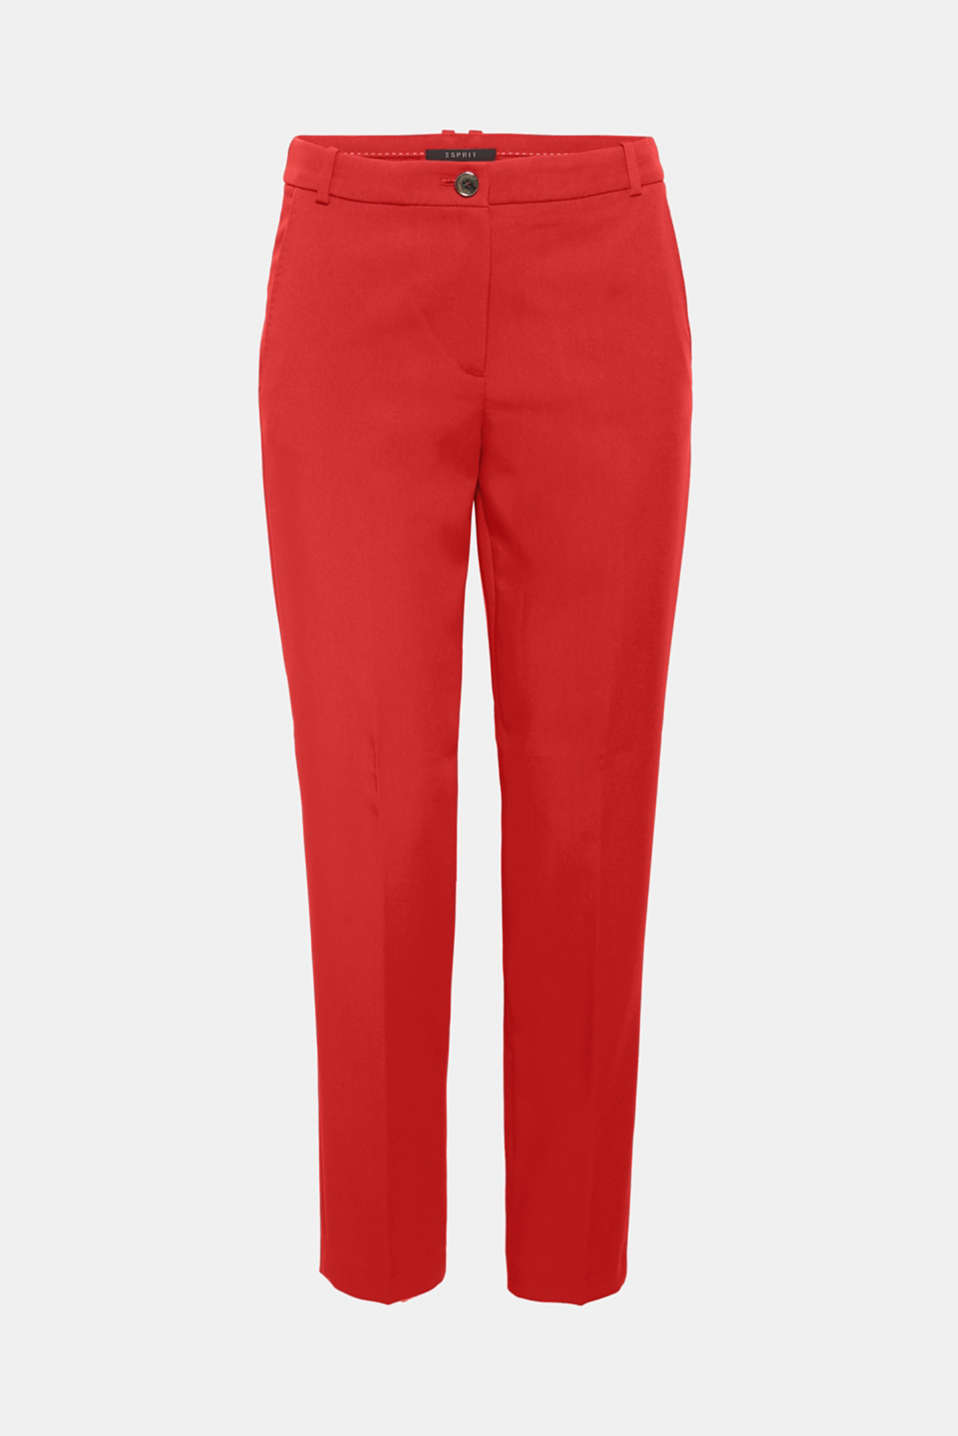 Worn with the matching blazer or on its own: the finely textured outer fabric in a trend colour and the tonal stitching on the pockets give these trousers their super fashionable note.